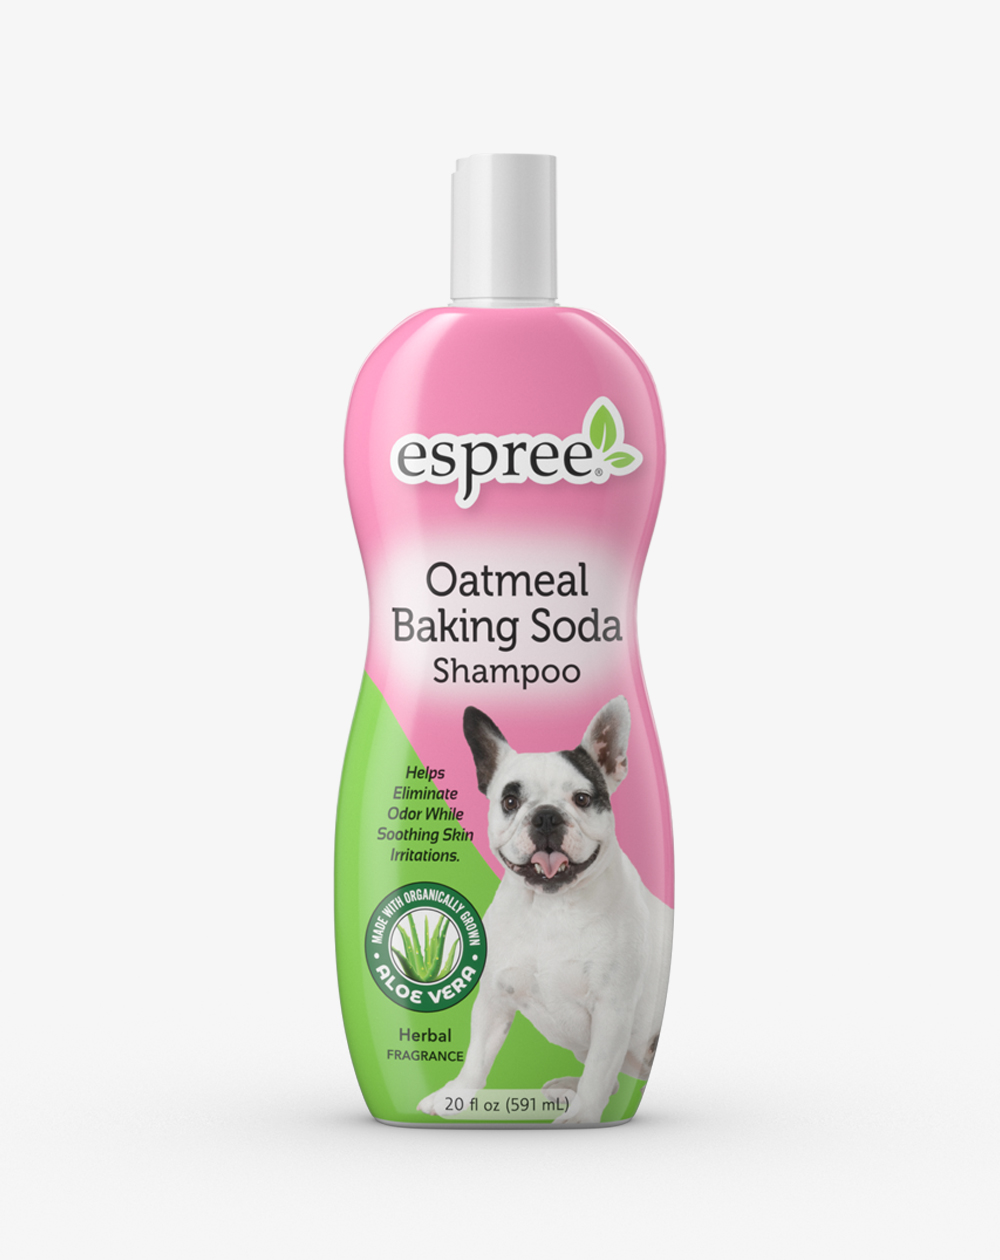 Espree Oatmeal Baking Soda Shampoo for Dogs